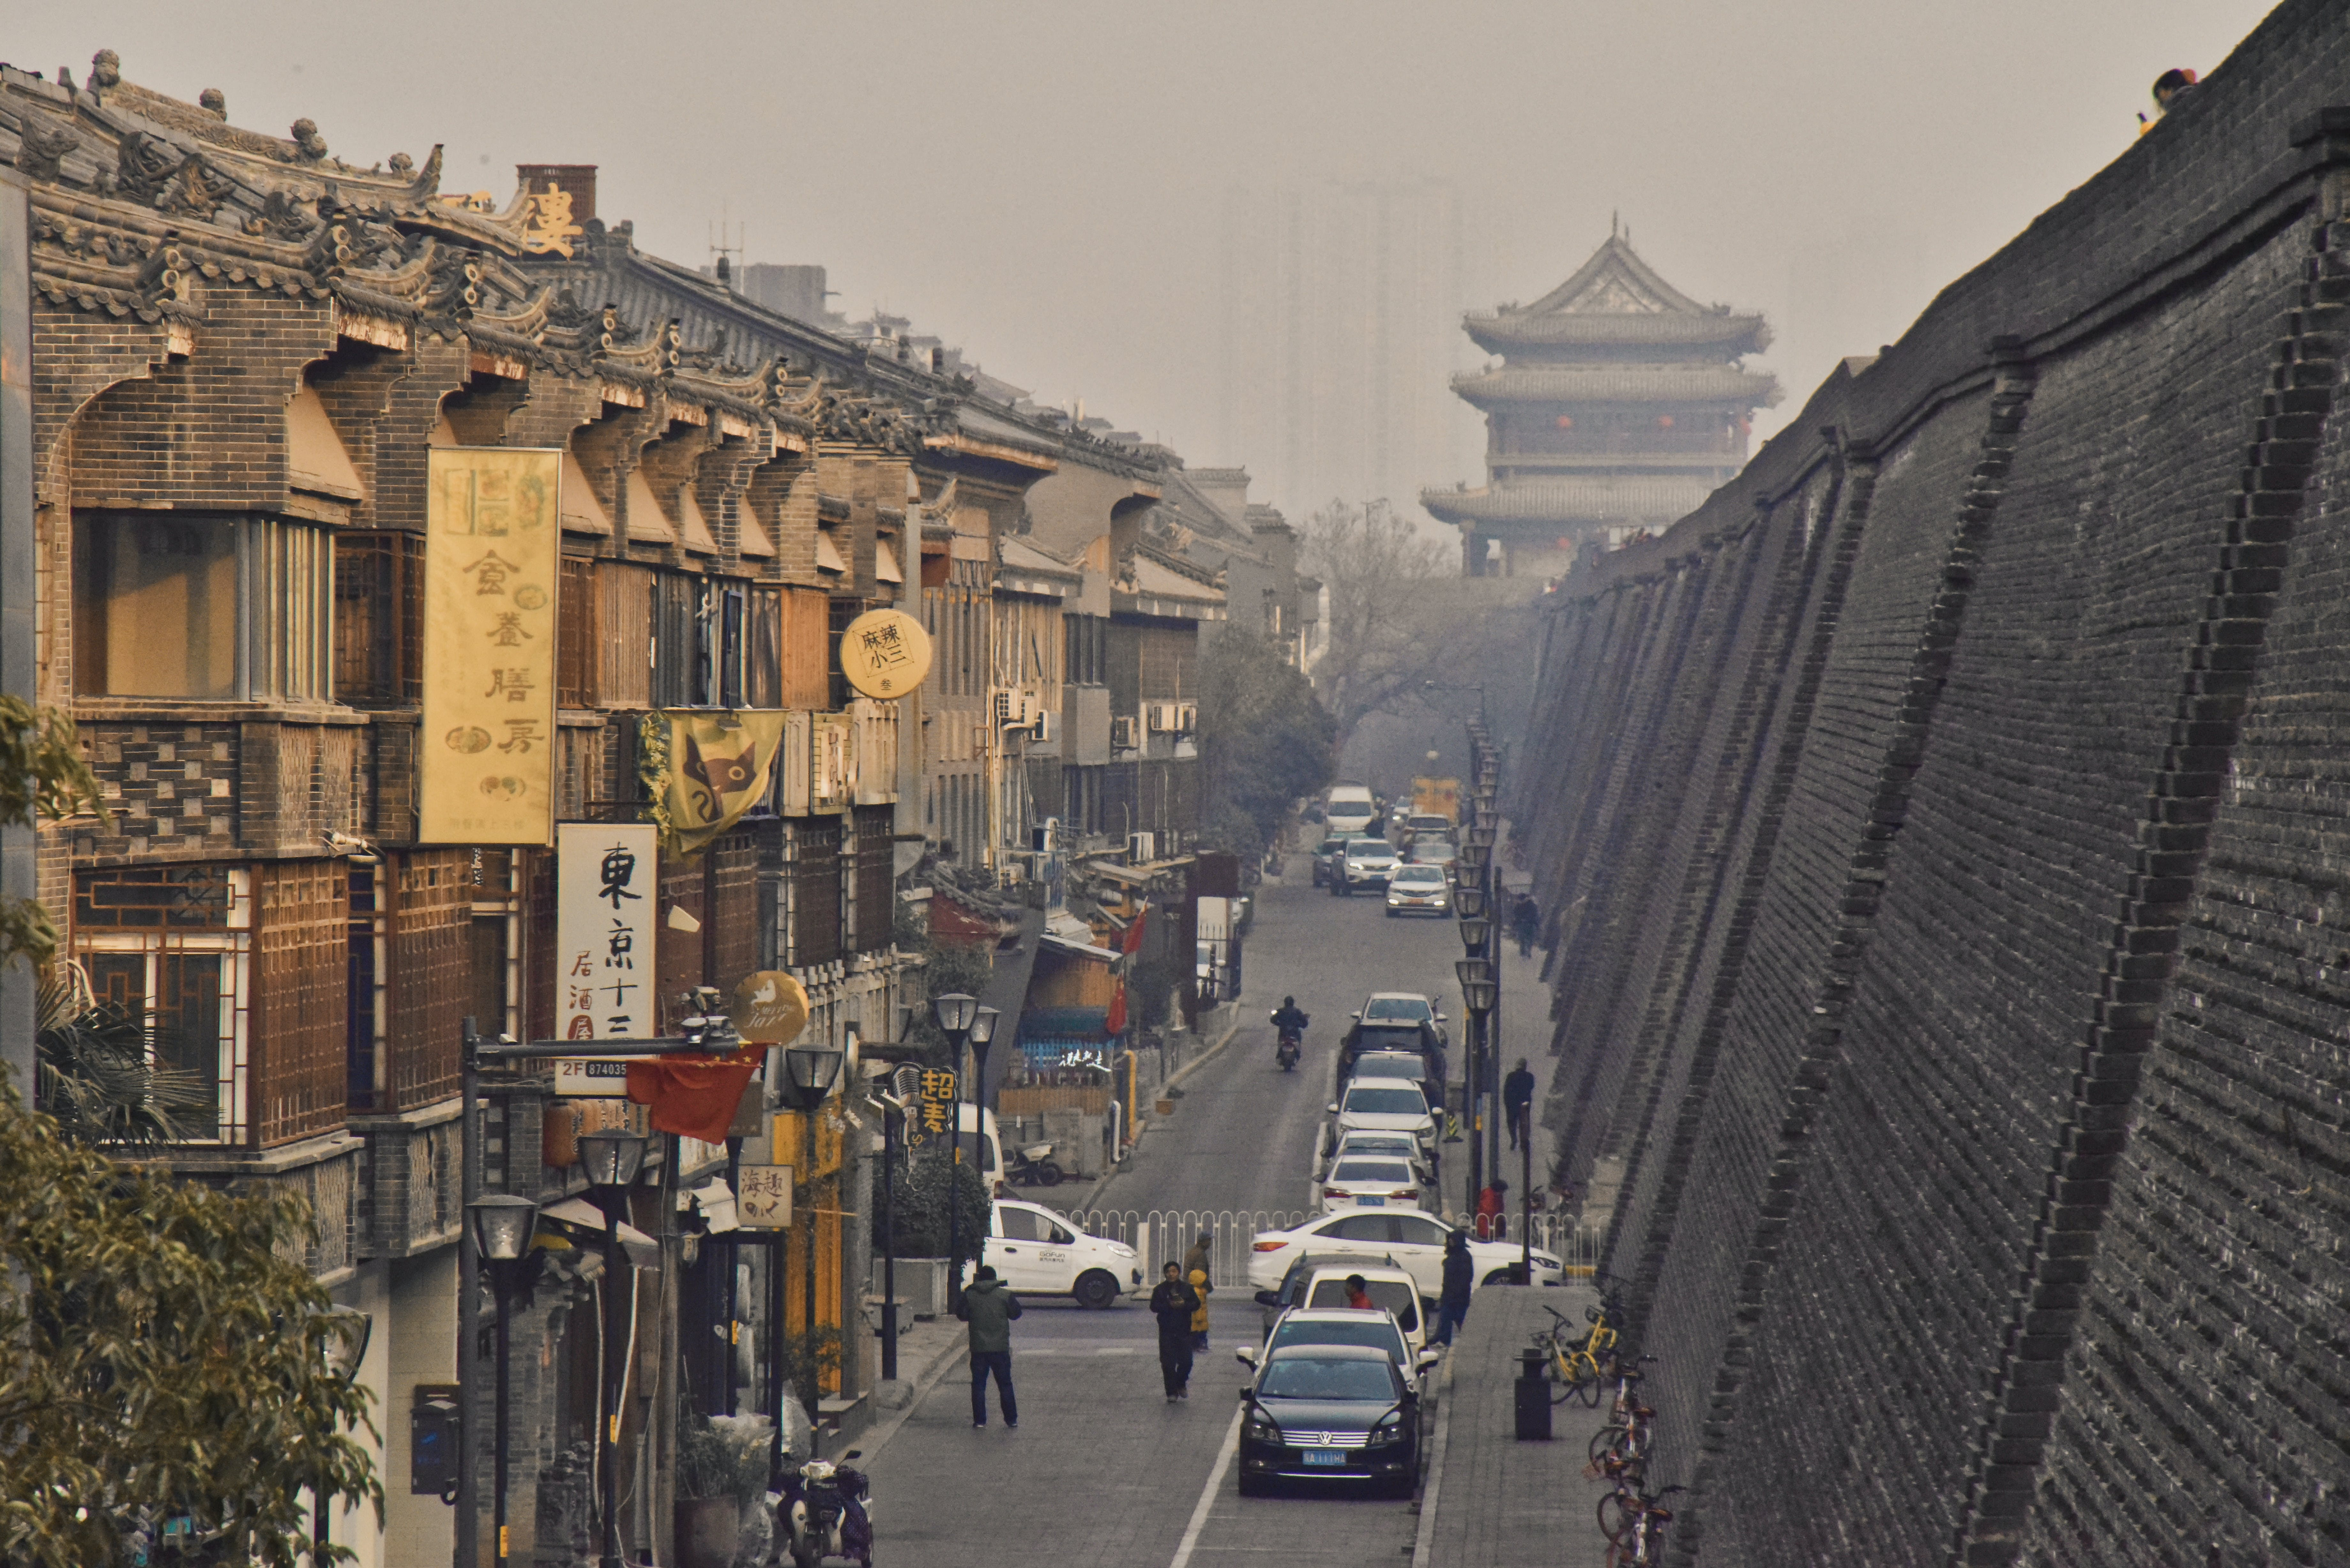 Free stock photo of chinese architecture, chinese city, city wall, traditional street view